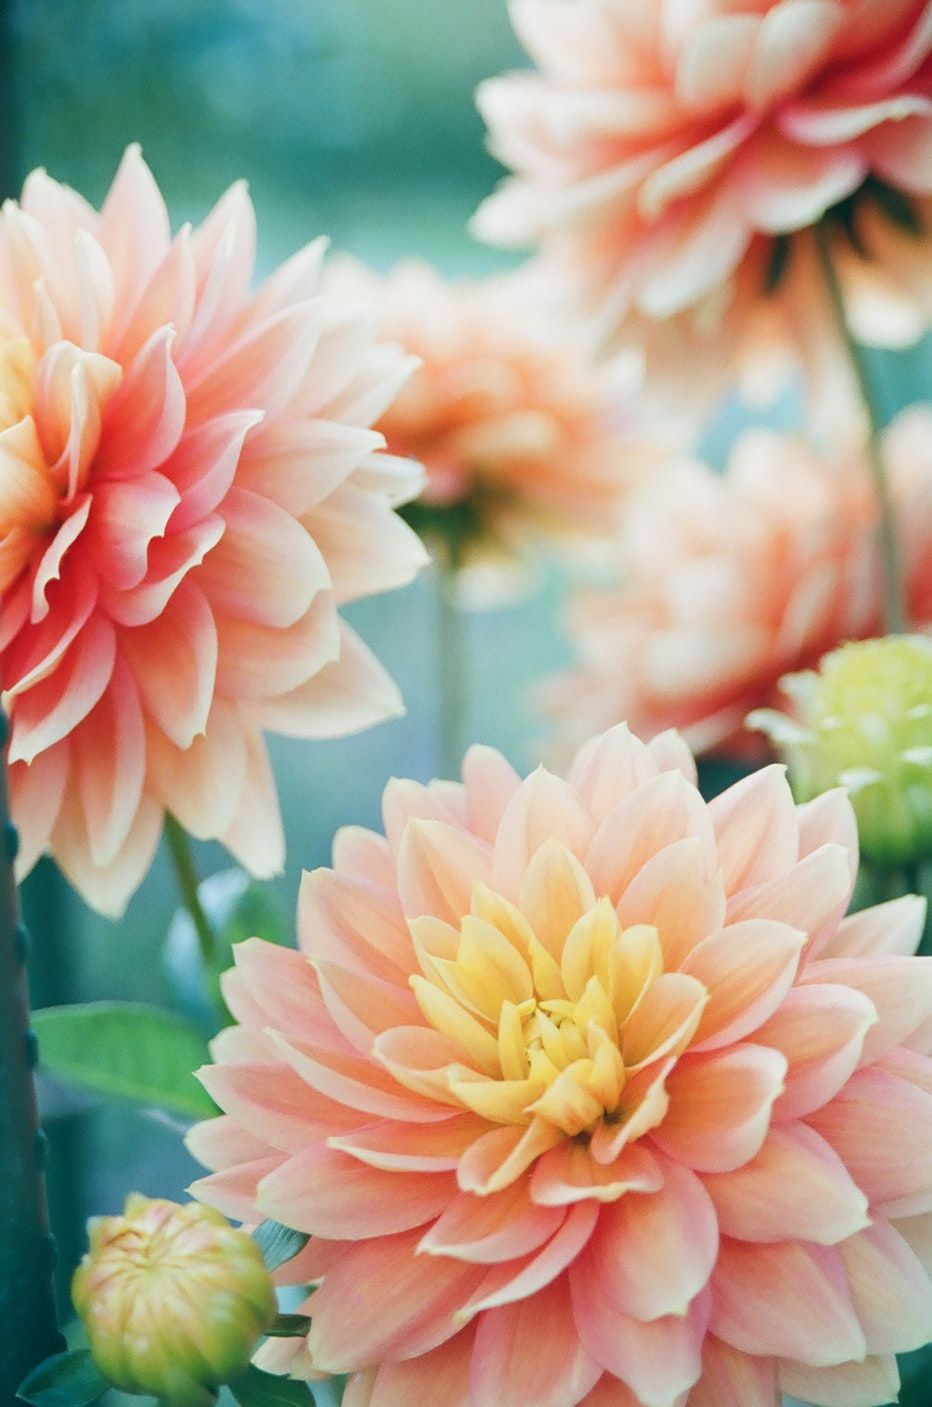 Flower Dahlia Plant And Blossom Hd Photo By Mio Ito Mioitophotography On Unsplash Flower Pictures Flower Wallpaper Dahlia Flower